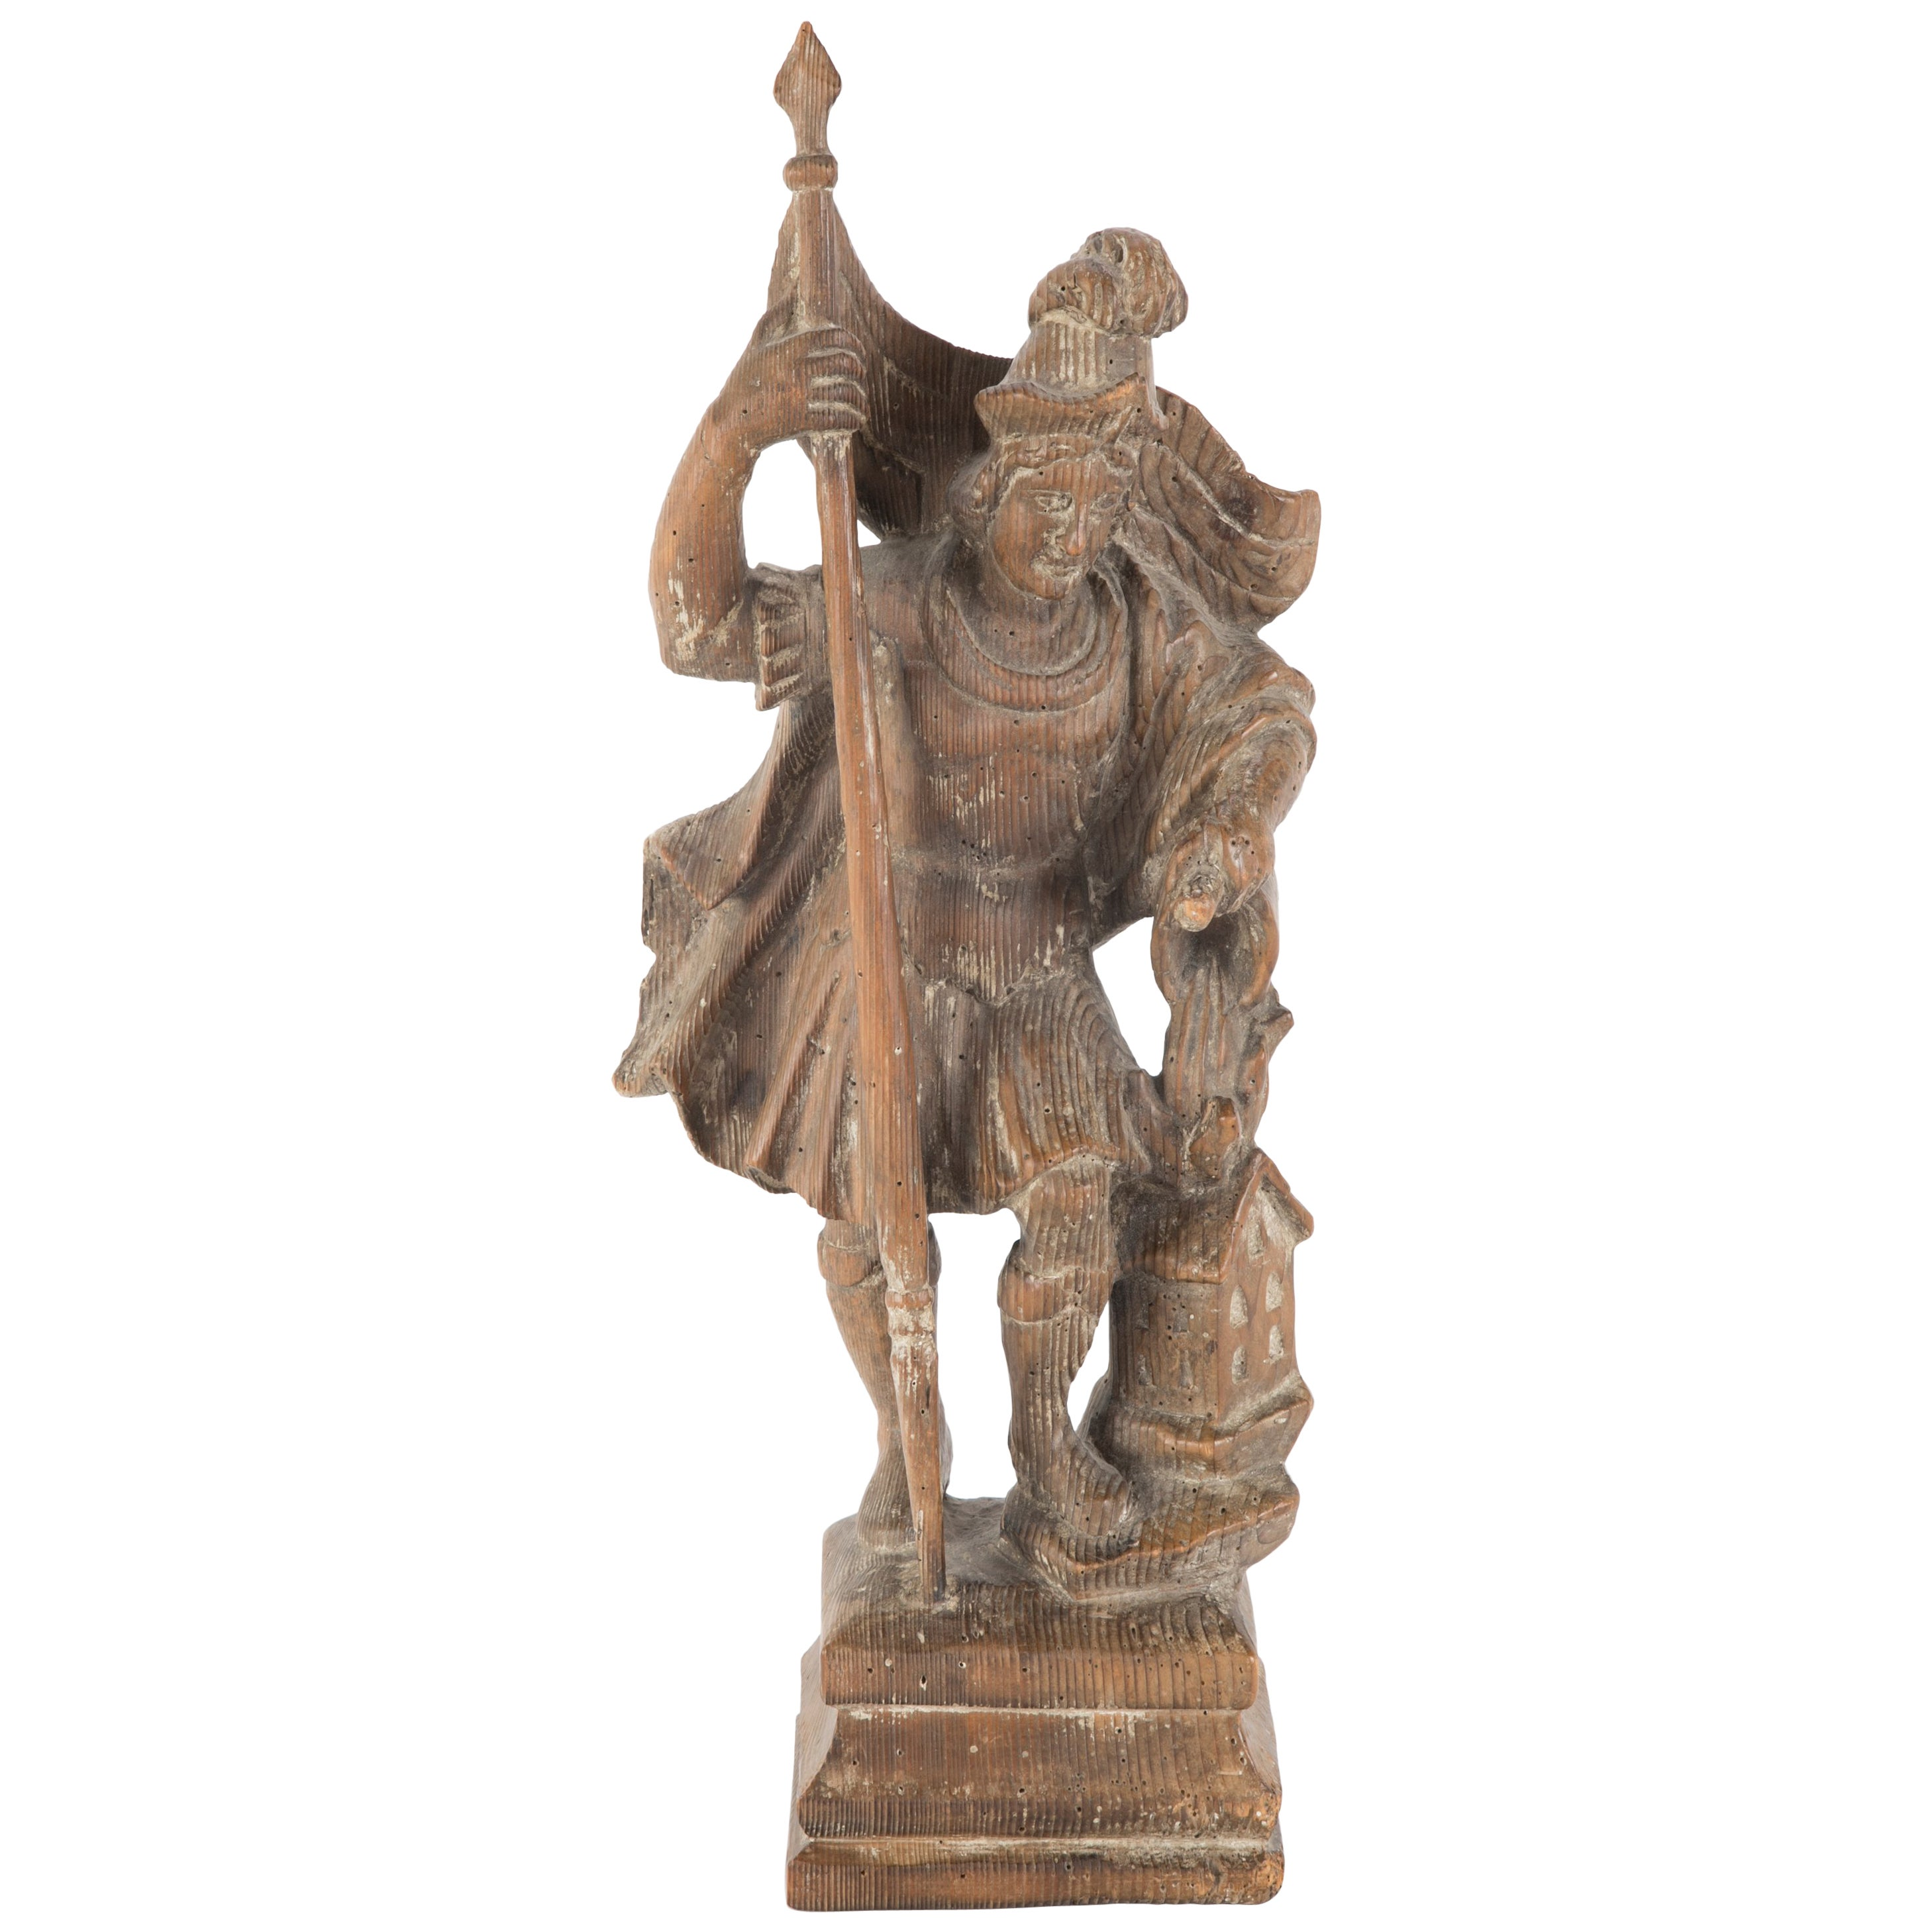 18th Century German Carved Wood Figure of Saint Florian